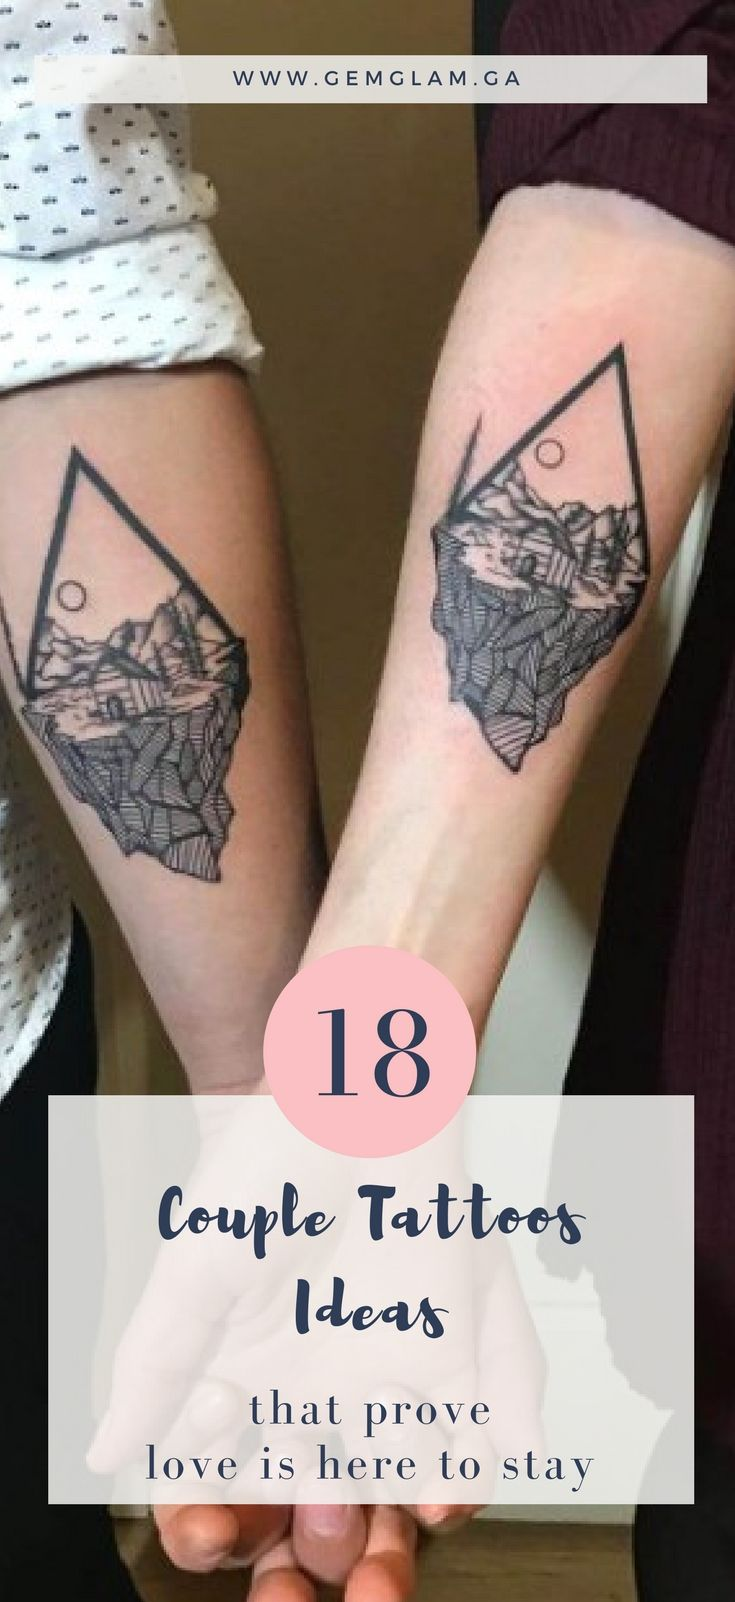 500+ Best Men's Tattoo Ideas & Design With Meaning (2019)